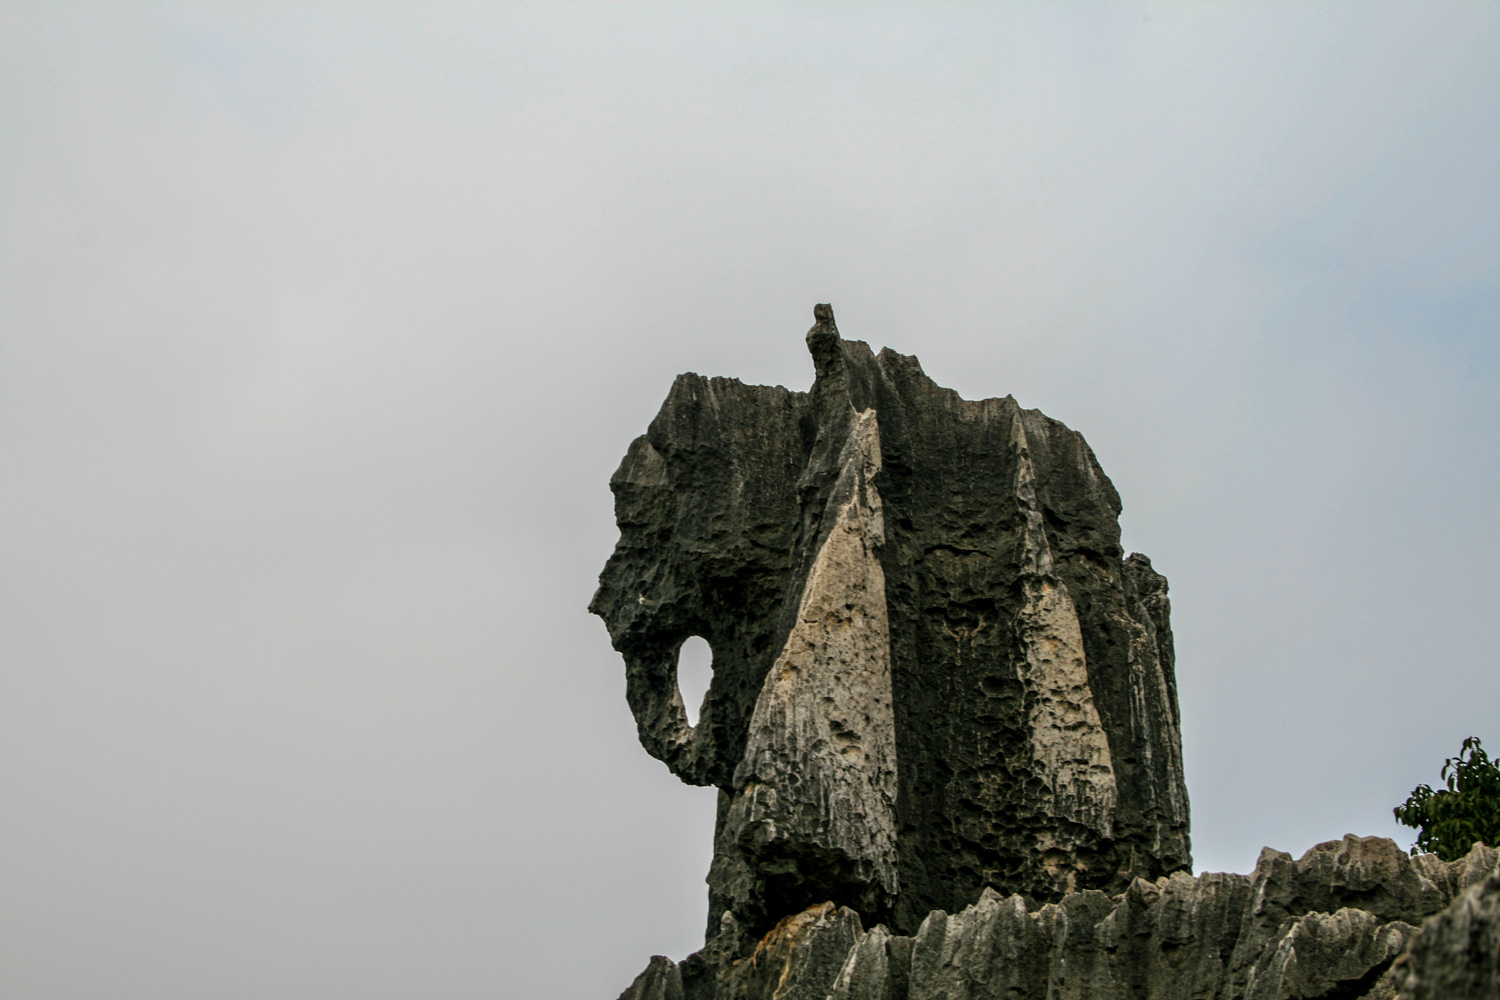 The Elephant Rock. One of the most famous rock formations